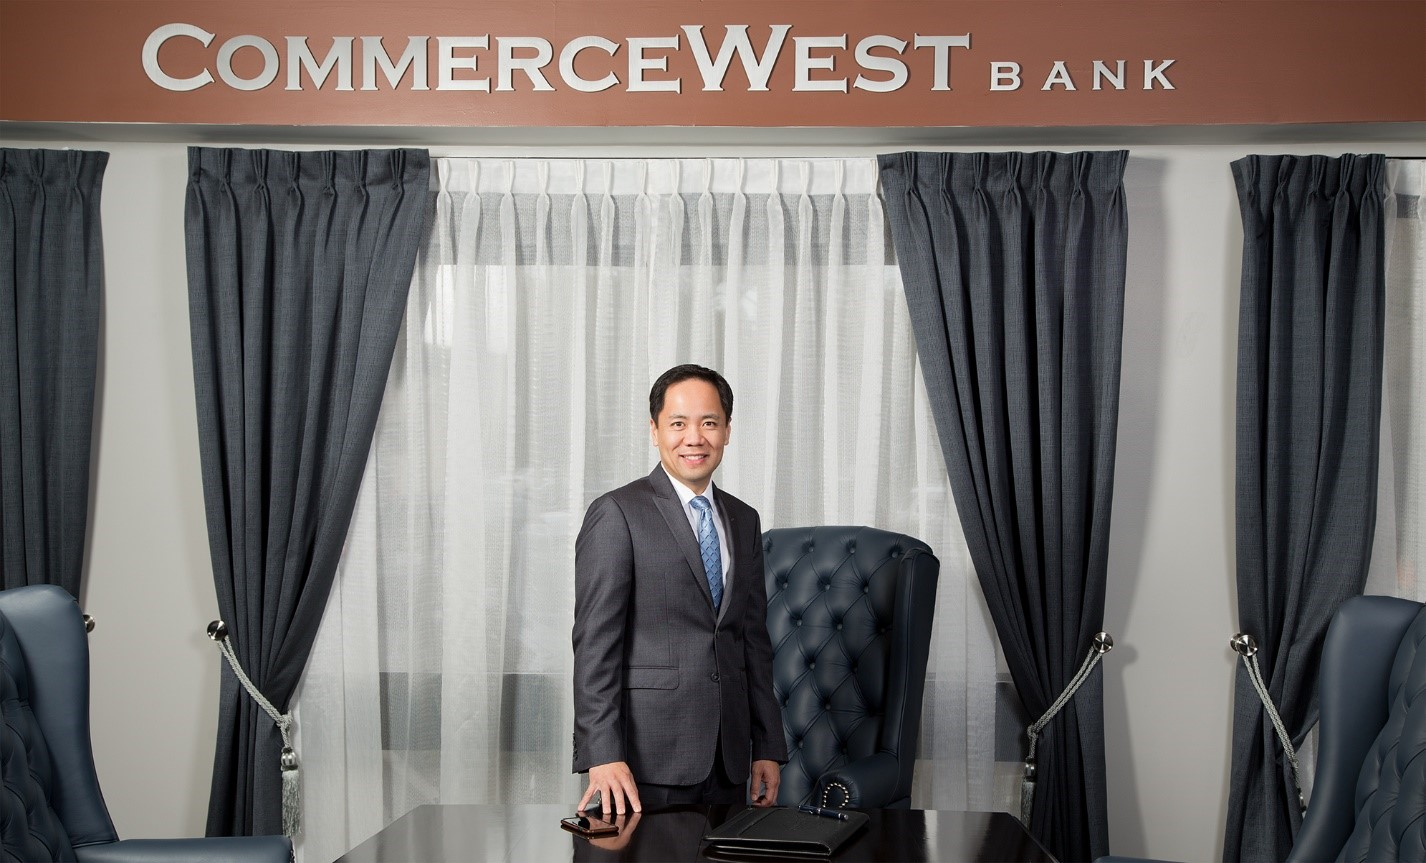 Ivo Tjan, president and founder of CommerceWest Bank, stands behind a desk at the company's Irvine, California headquarters.